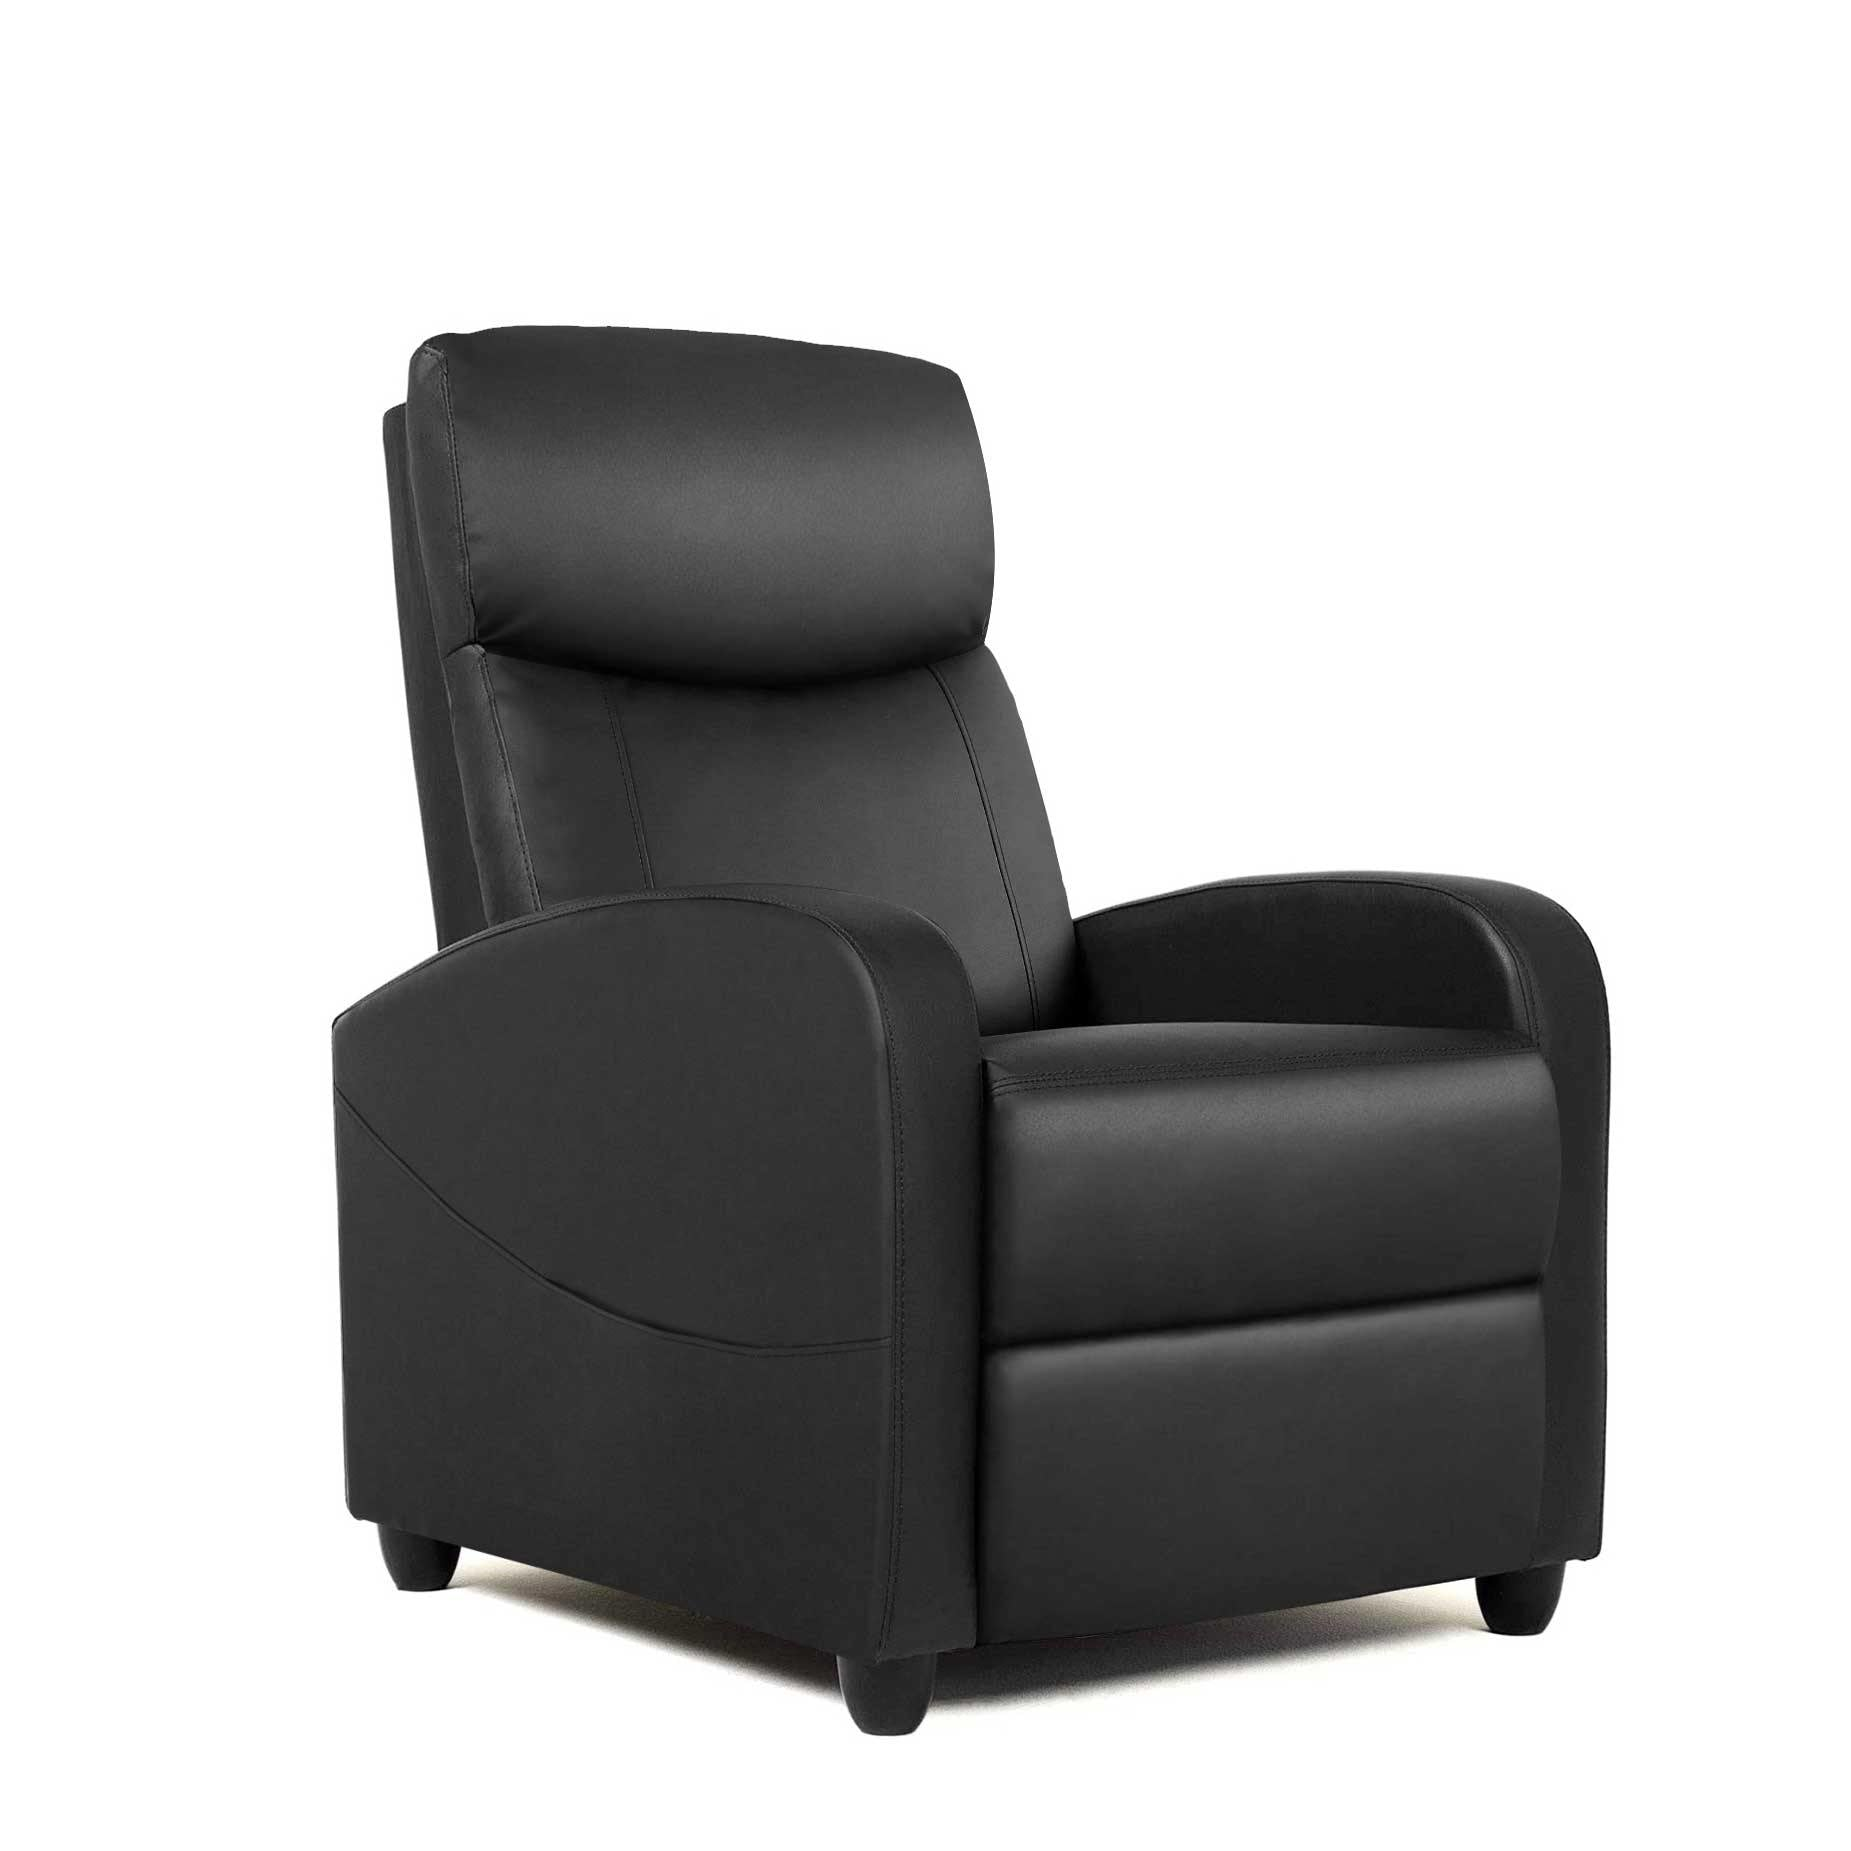 Milemont Recliner Sofa Chair, Reclining Chair with PU Leather Padded Seat Backrest Black